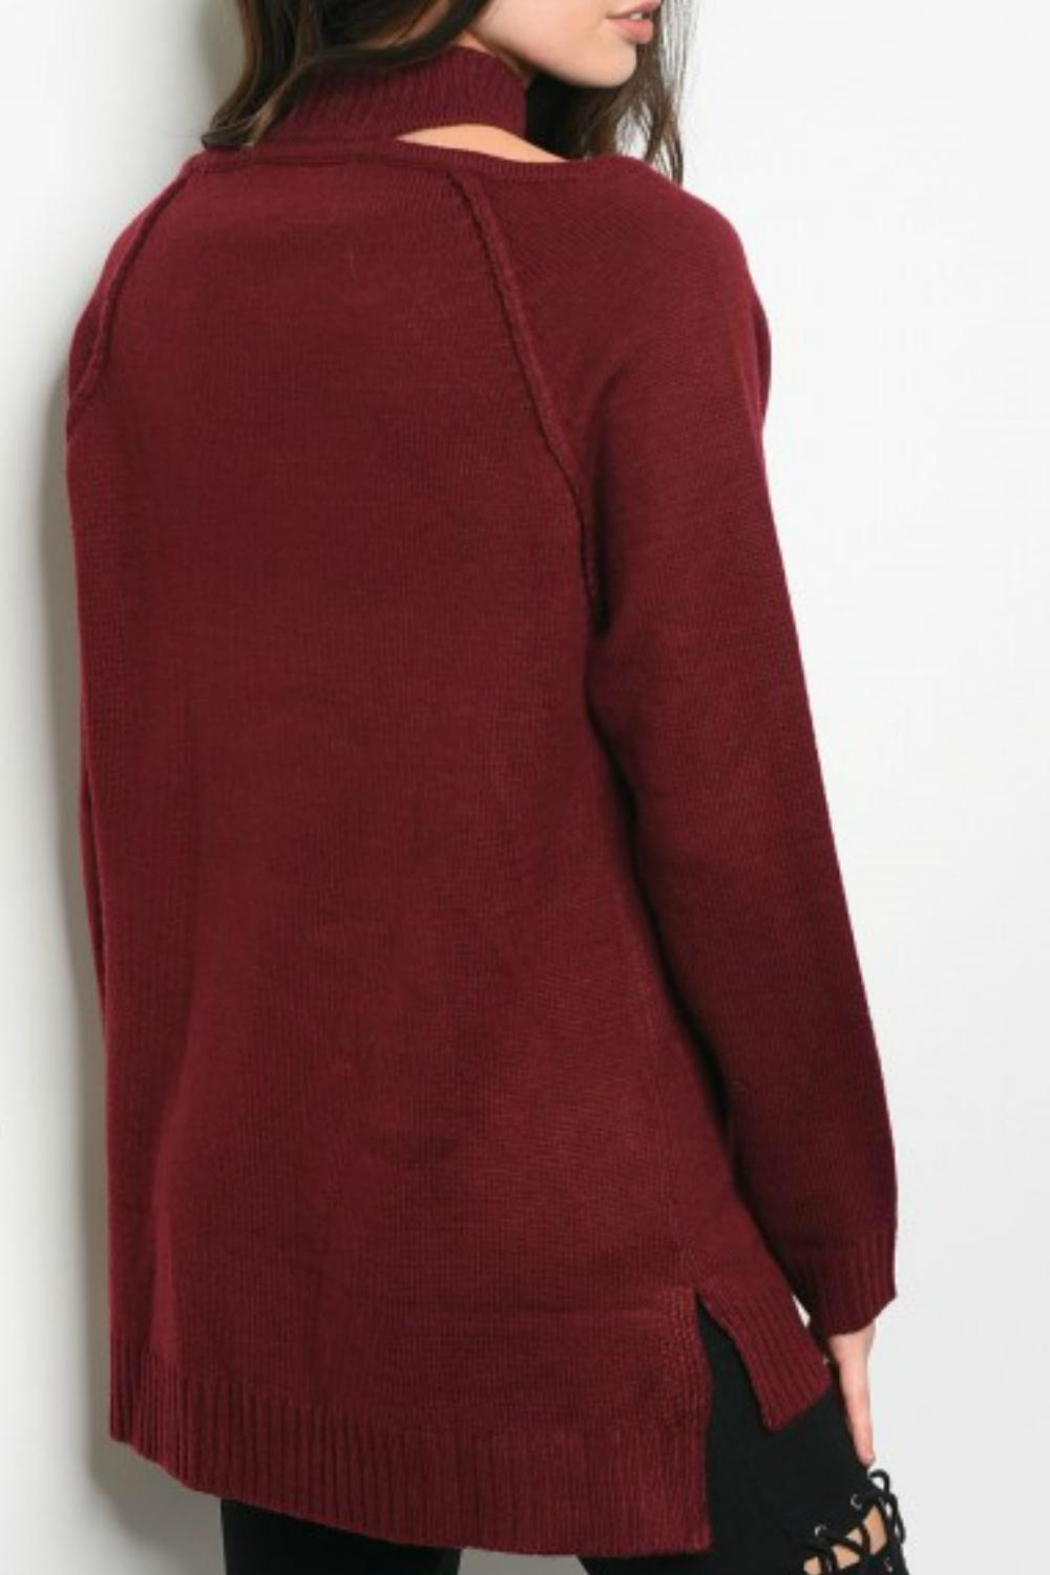 LoveRiche Wine Sweater - Front Full Image